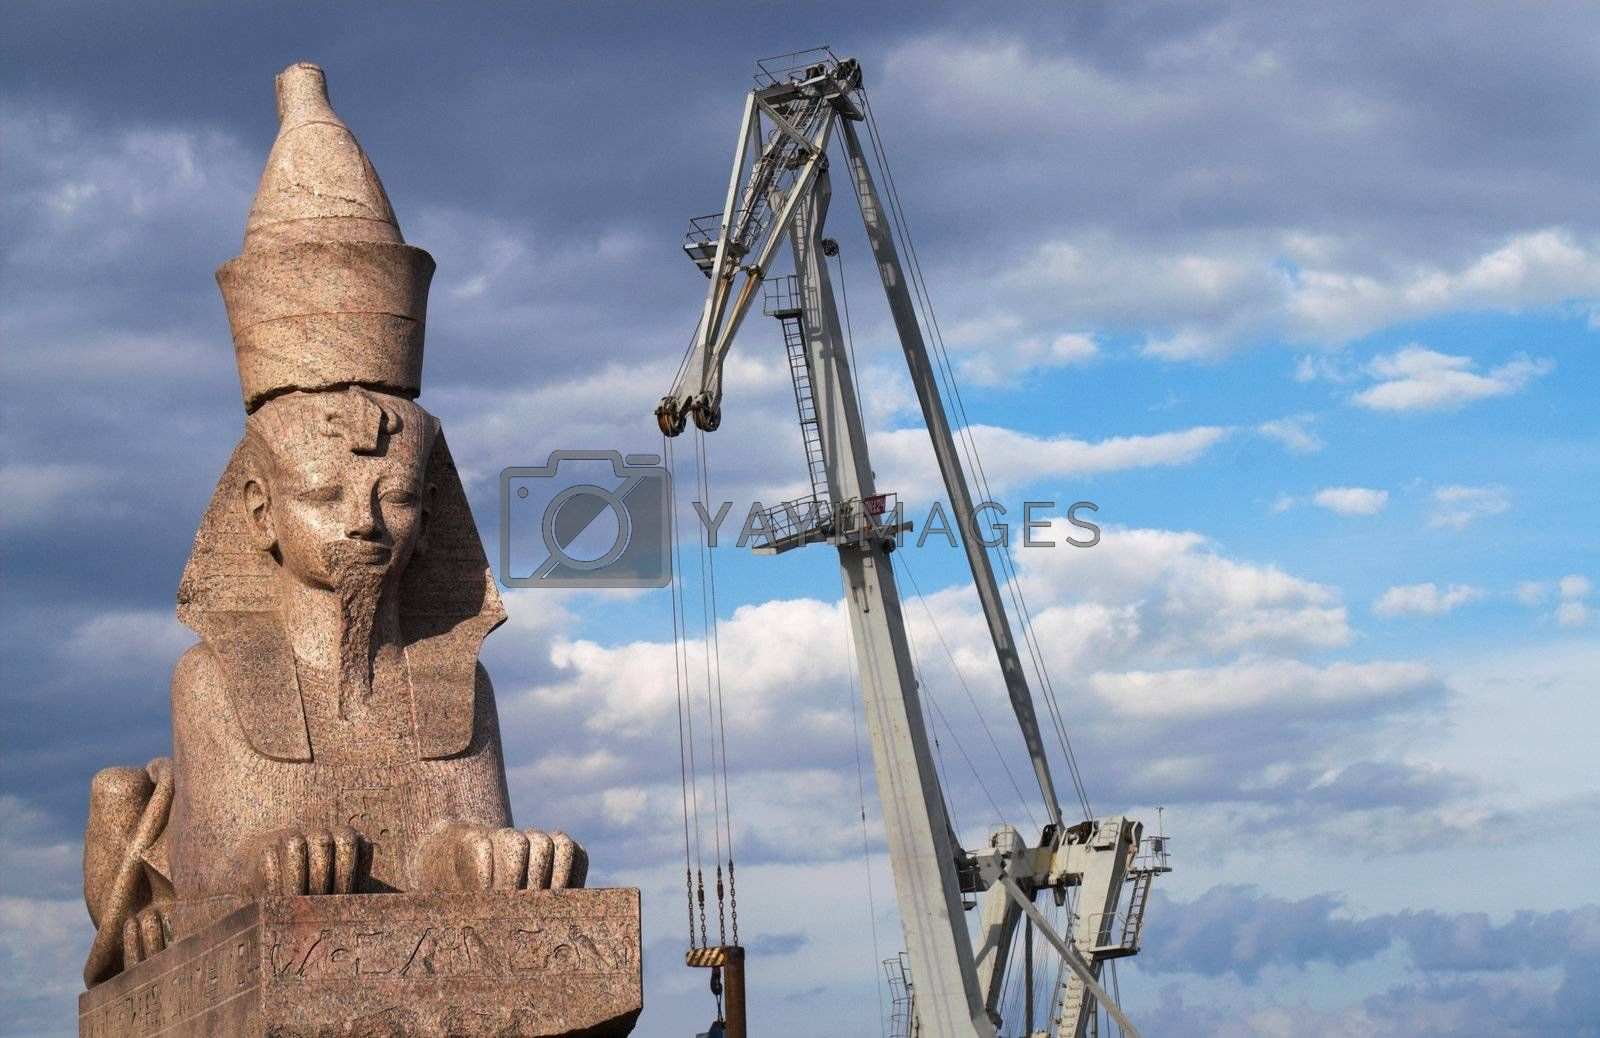 One of two counter-facing Egyptian Sphinxes on the Schmidt's Embankment in Saint Petersburg, Russia. These ancient sphinxes are about 3200 years old and were found in 1820 in Thebes, Egypt. Then they were sold by the French government to Russia for 64 000 roubles and brought to Saint Petersburg.